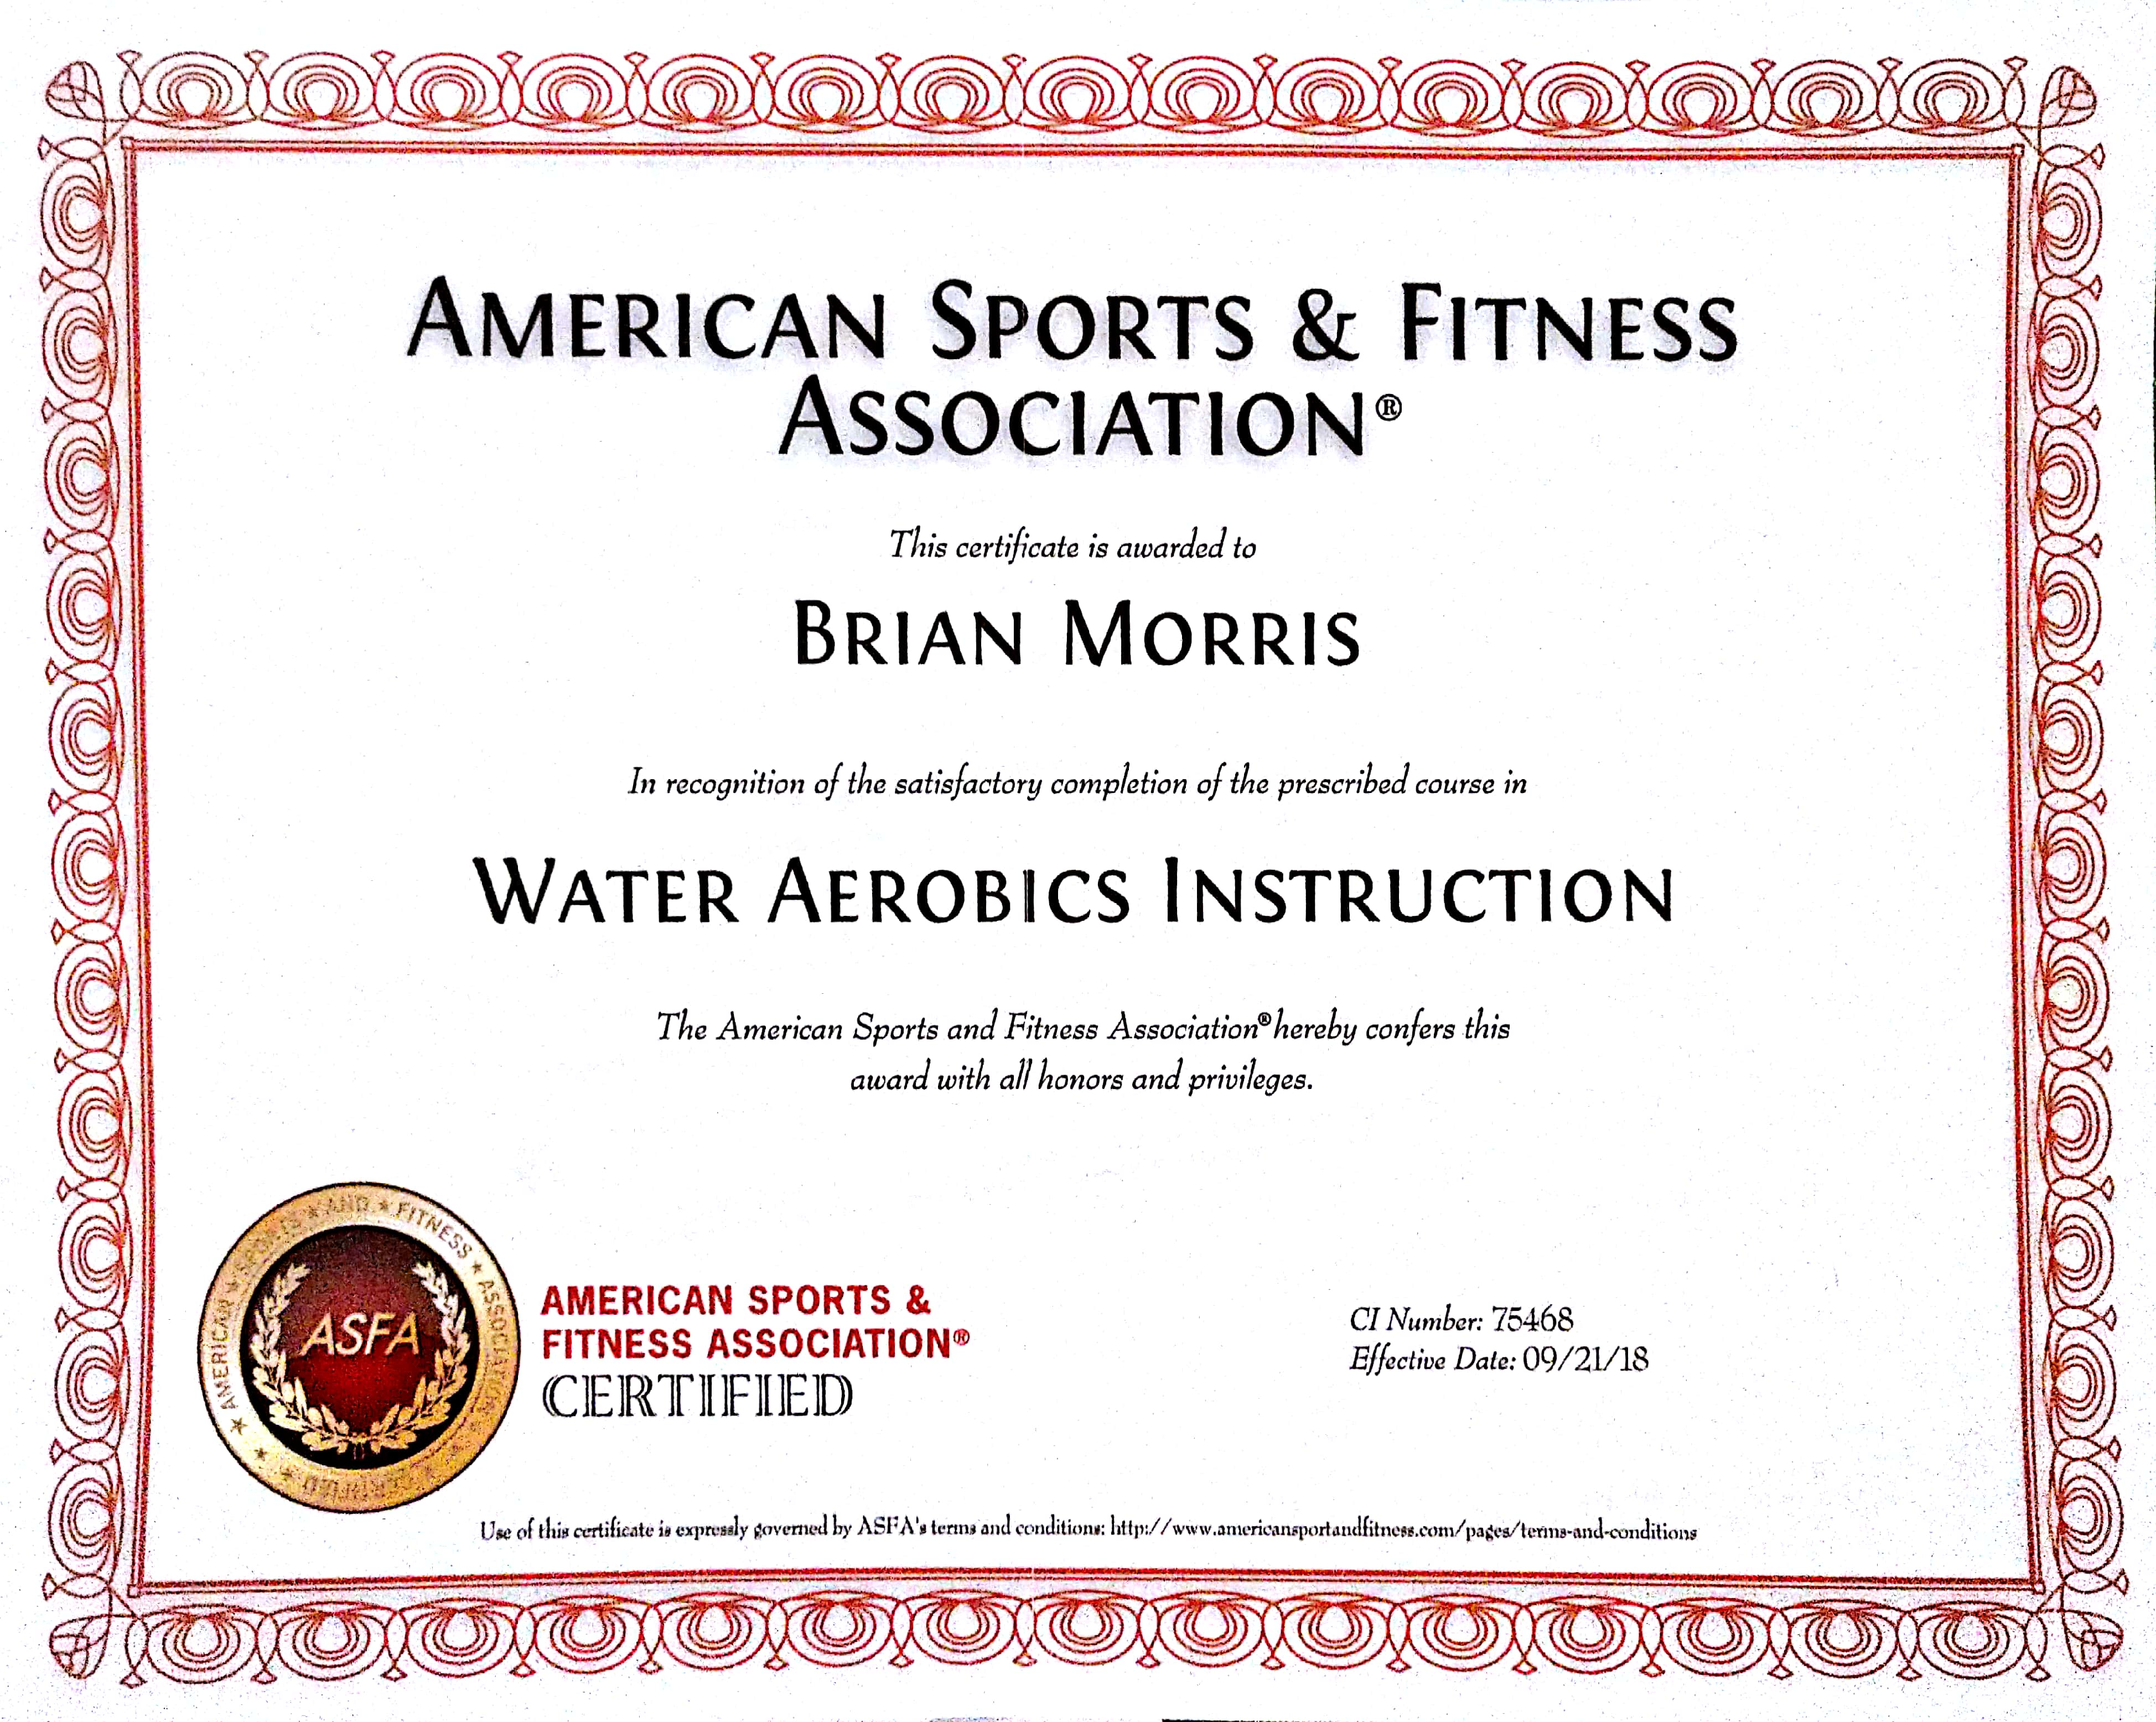 Brian Morris Group Fitness Instructor Profile Guided Fitness